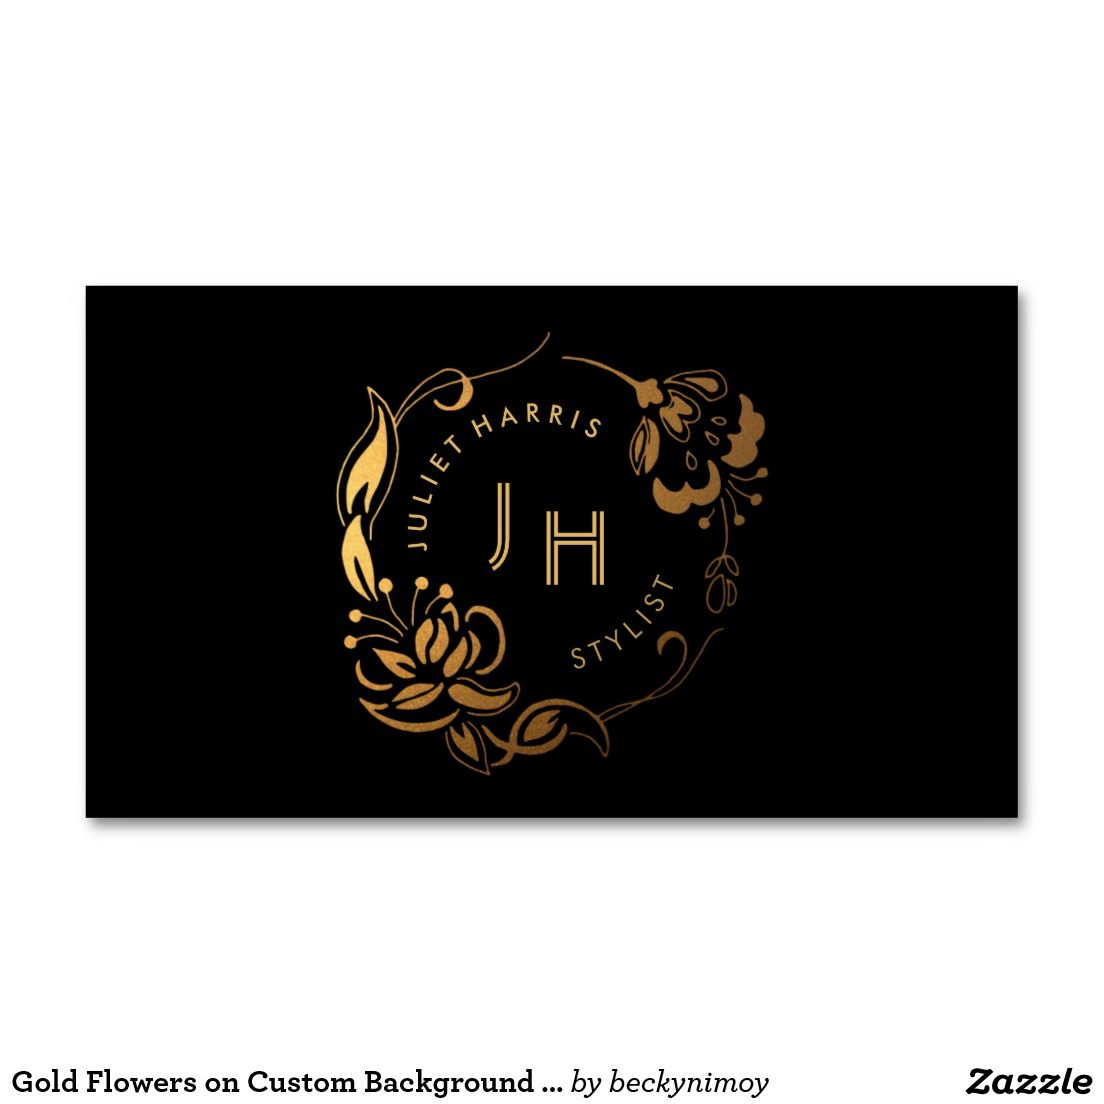 Gold flowers on custom background business card pinterest gold flowers on custom background business card pack of standard business cards reheart Images